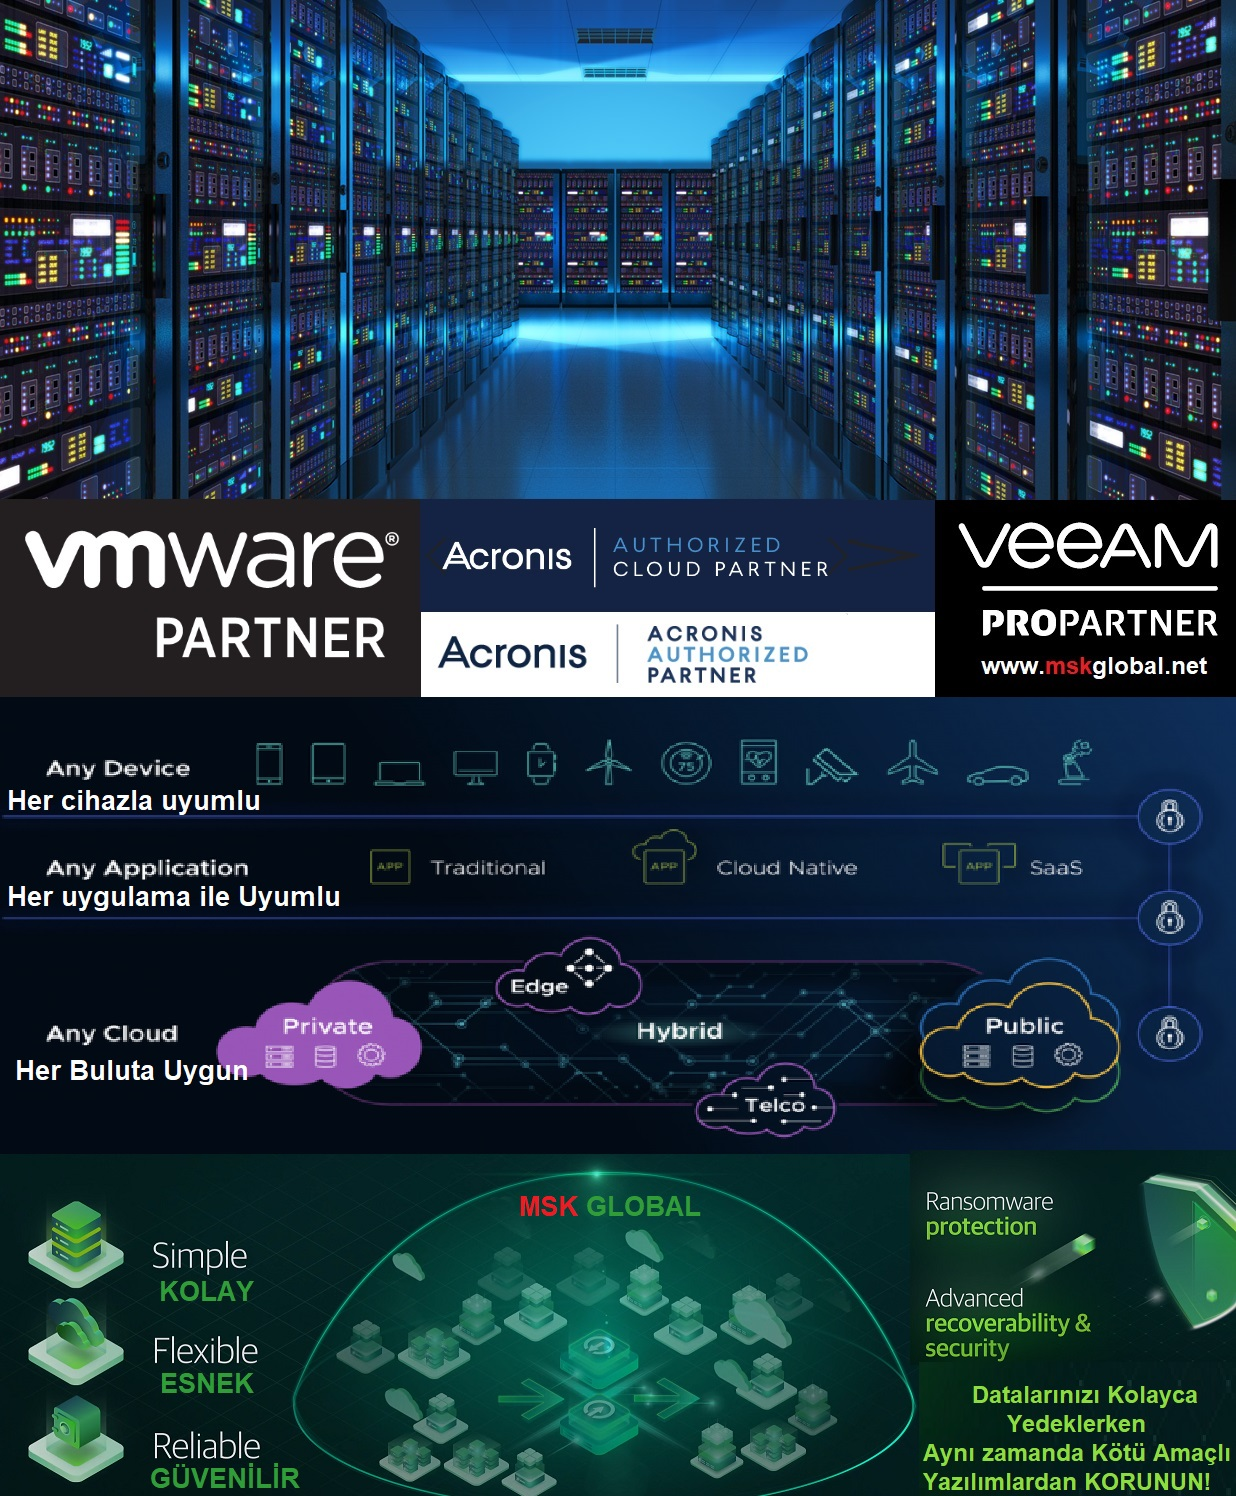 vmware , veeam,acronis türkiye